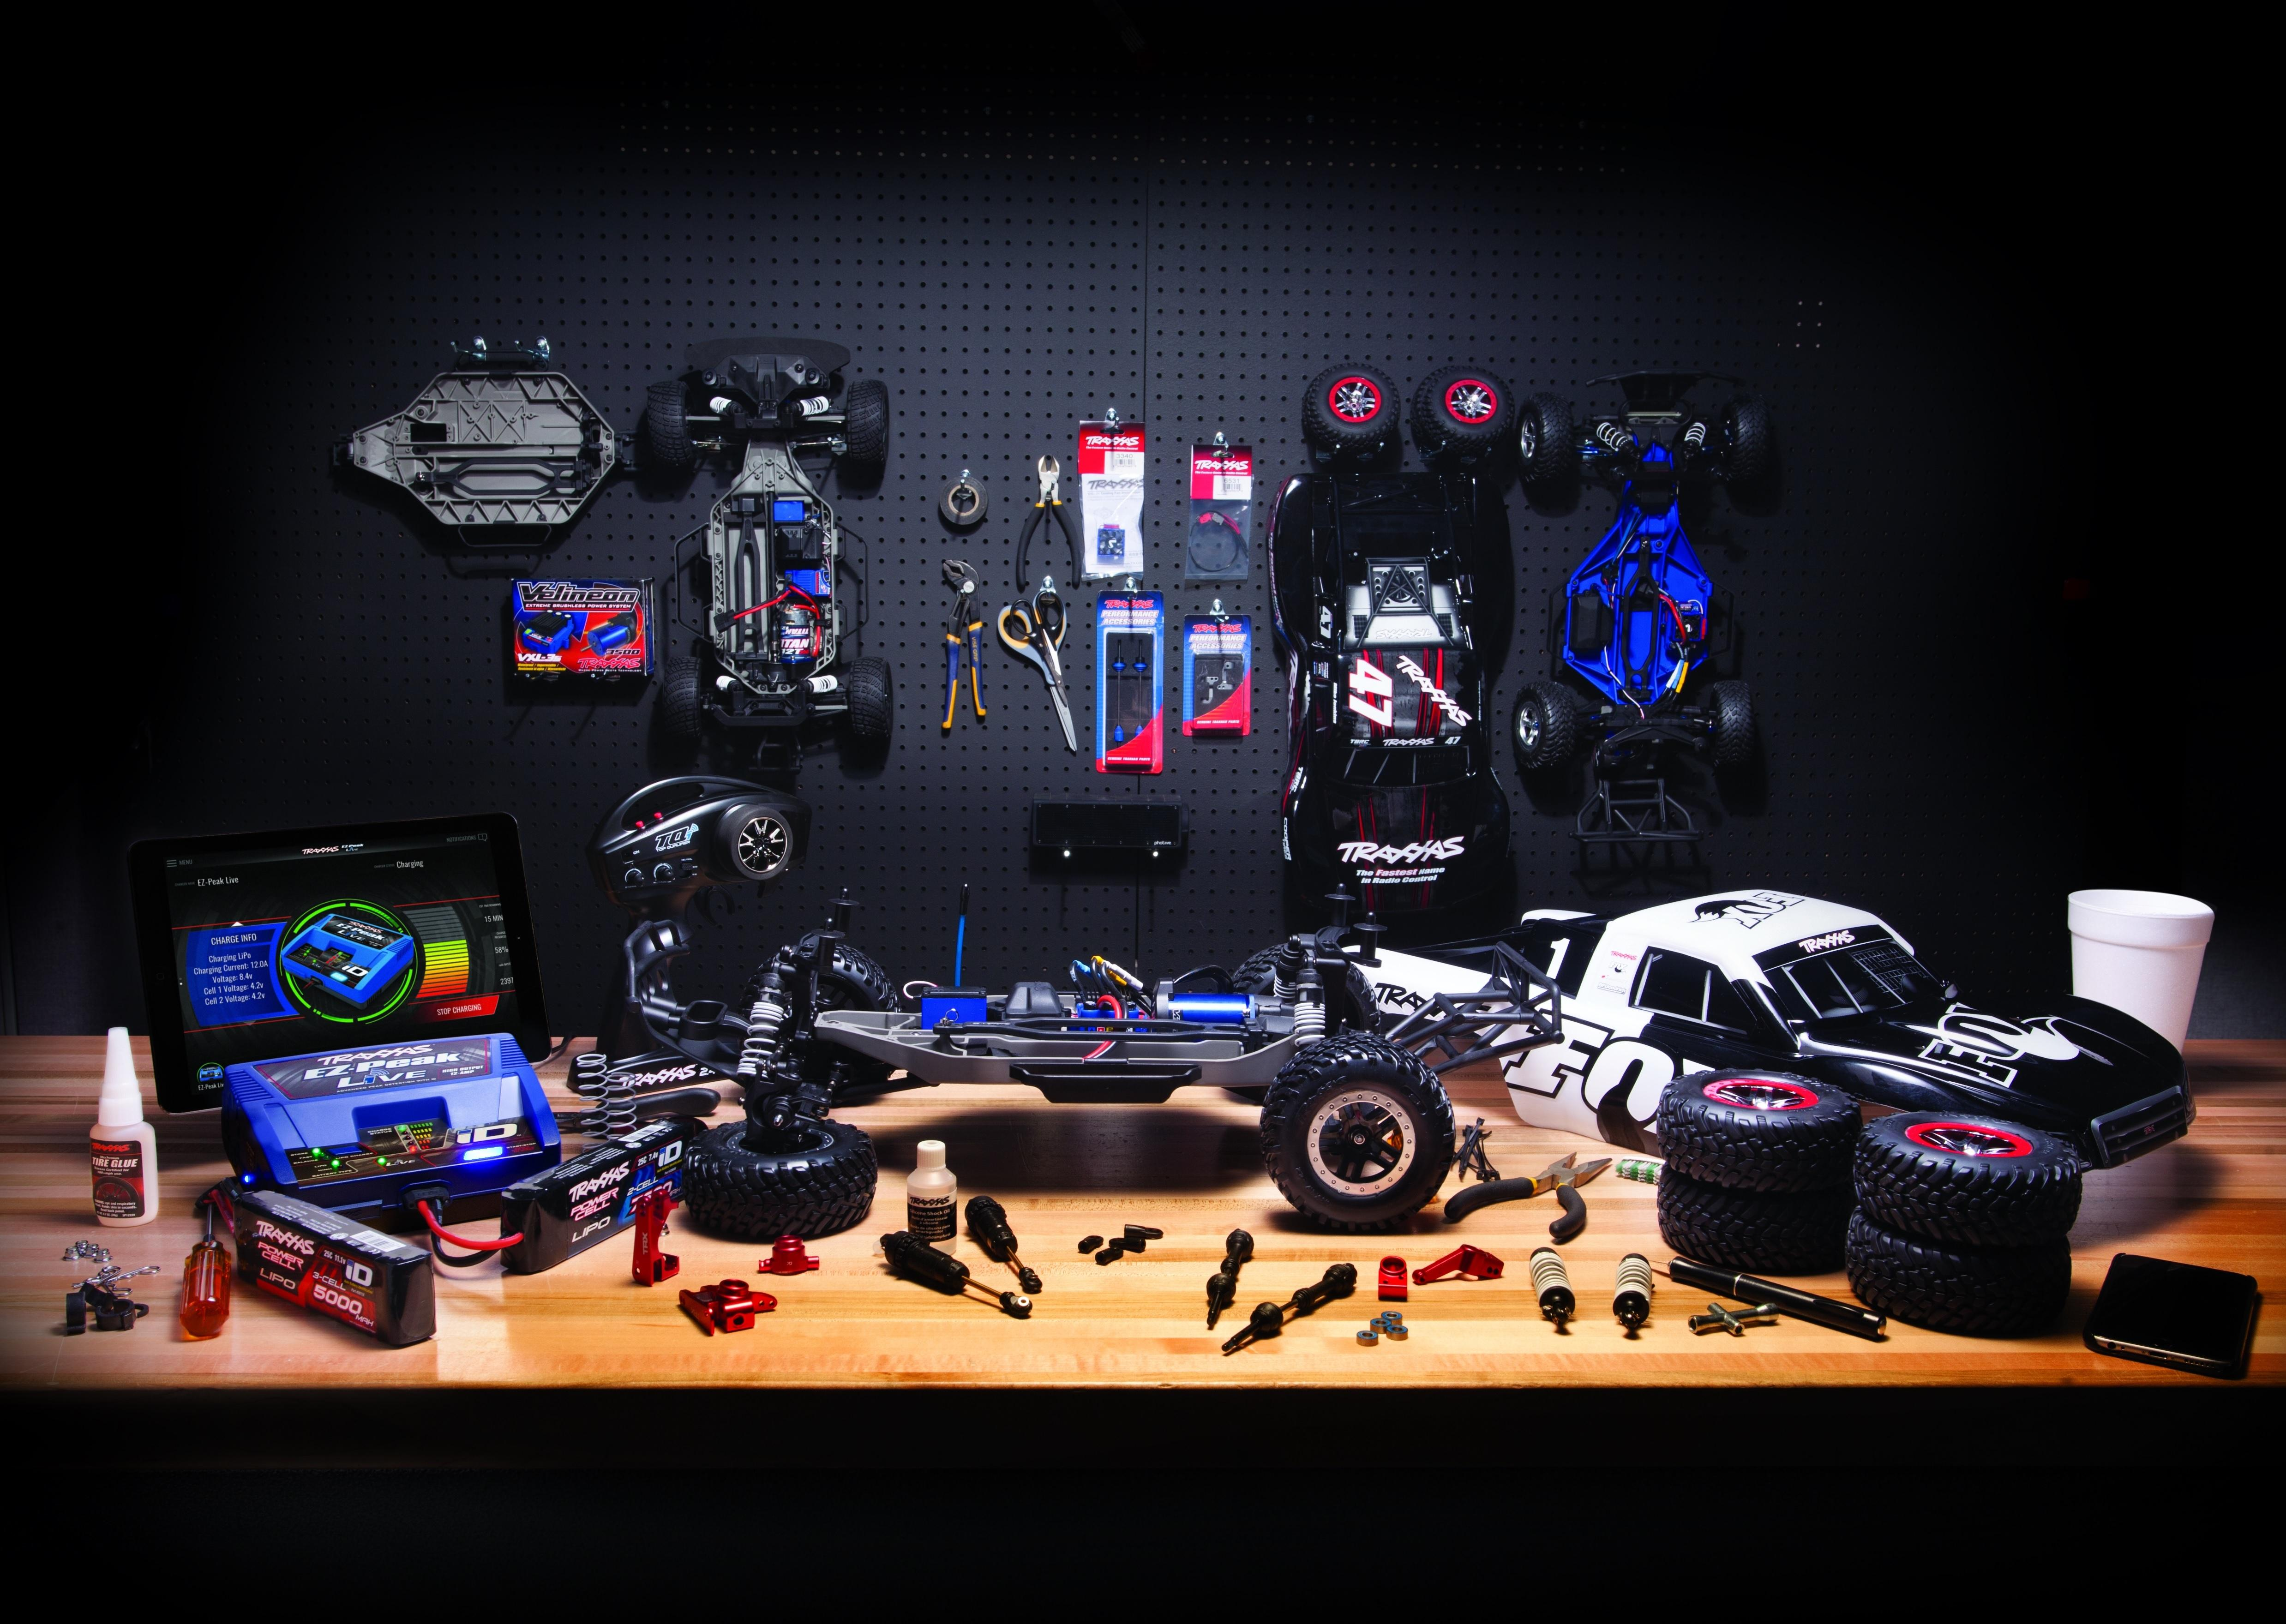 Traxxas 3785 Titan 12 Turn 550 Motor Toys Games Download 1834 Body Clips 1 90 1951 Half Shaft View Larger